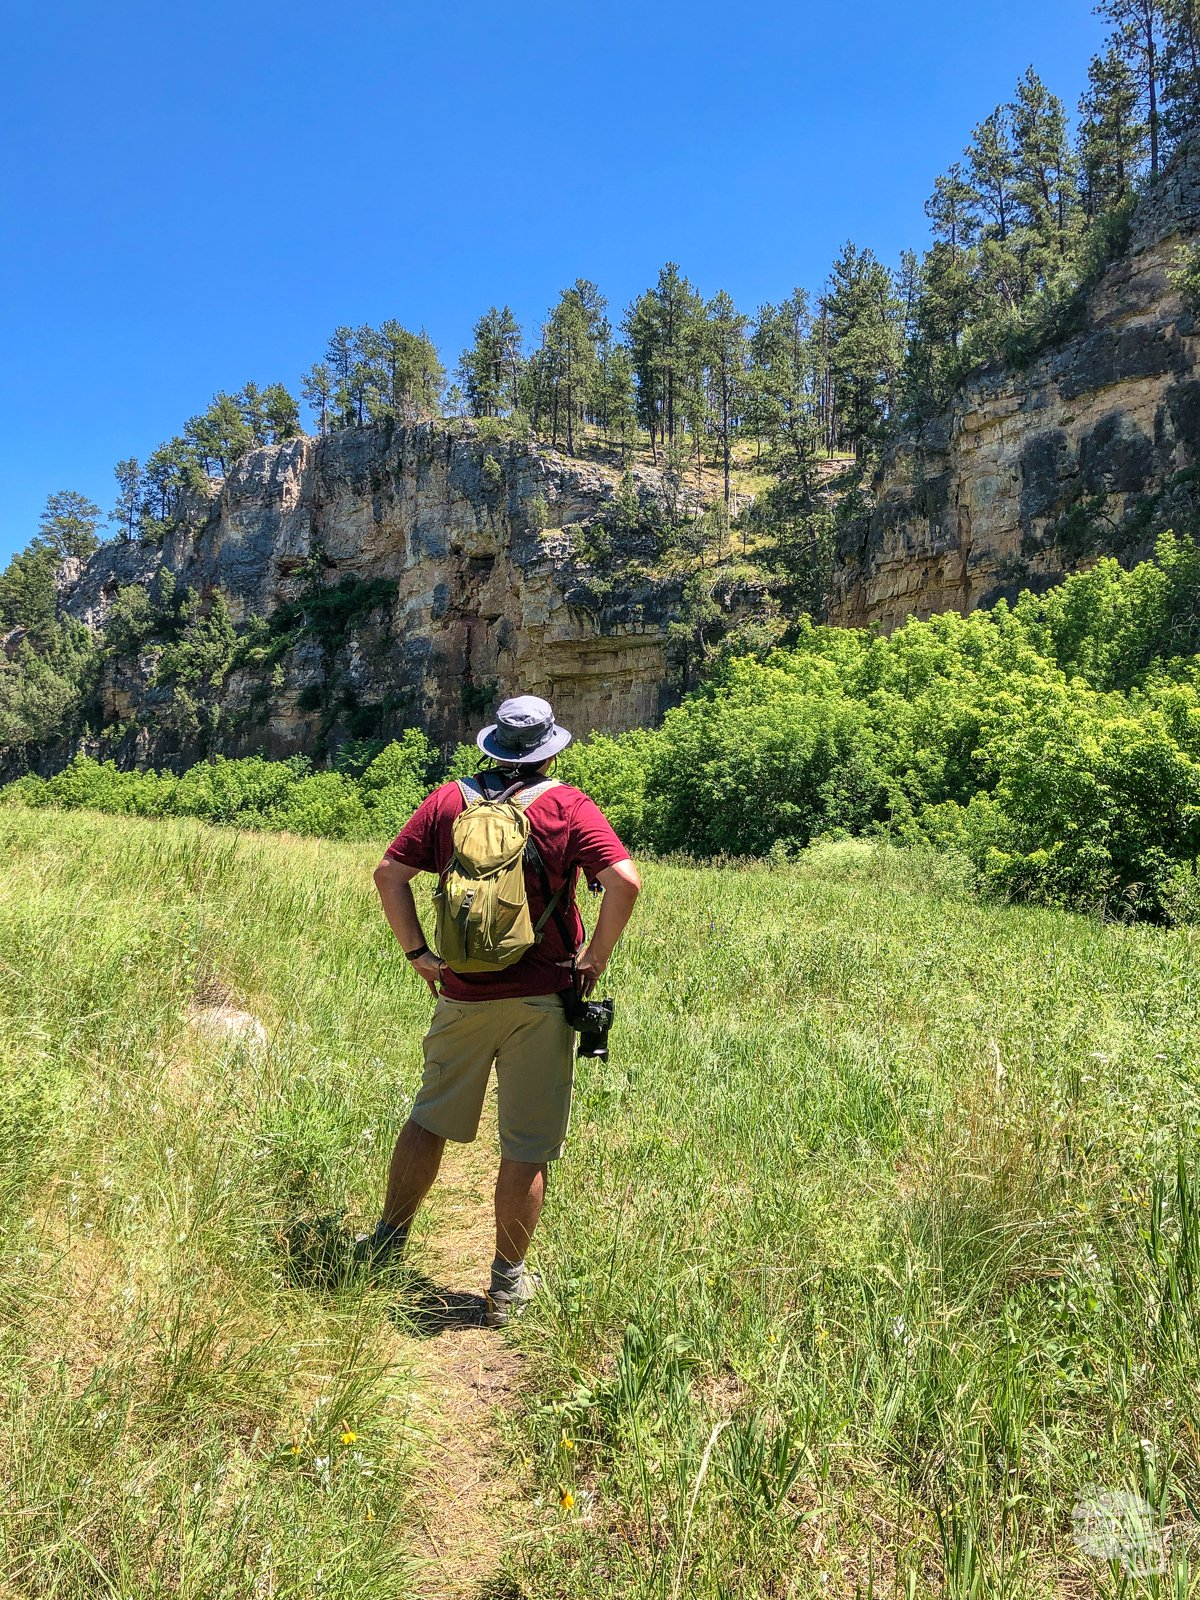 Grant stopping on the Cold Brook Canyon Trail in Wind Cave National Park to admire the canyon walls.